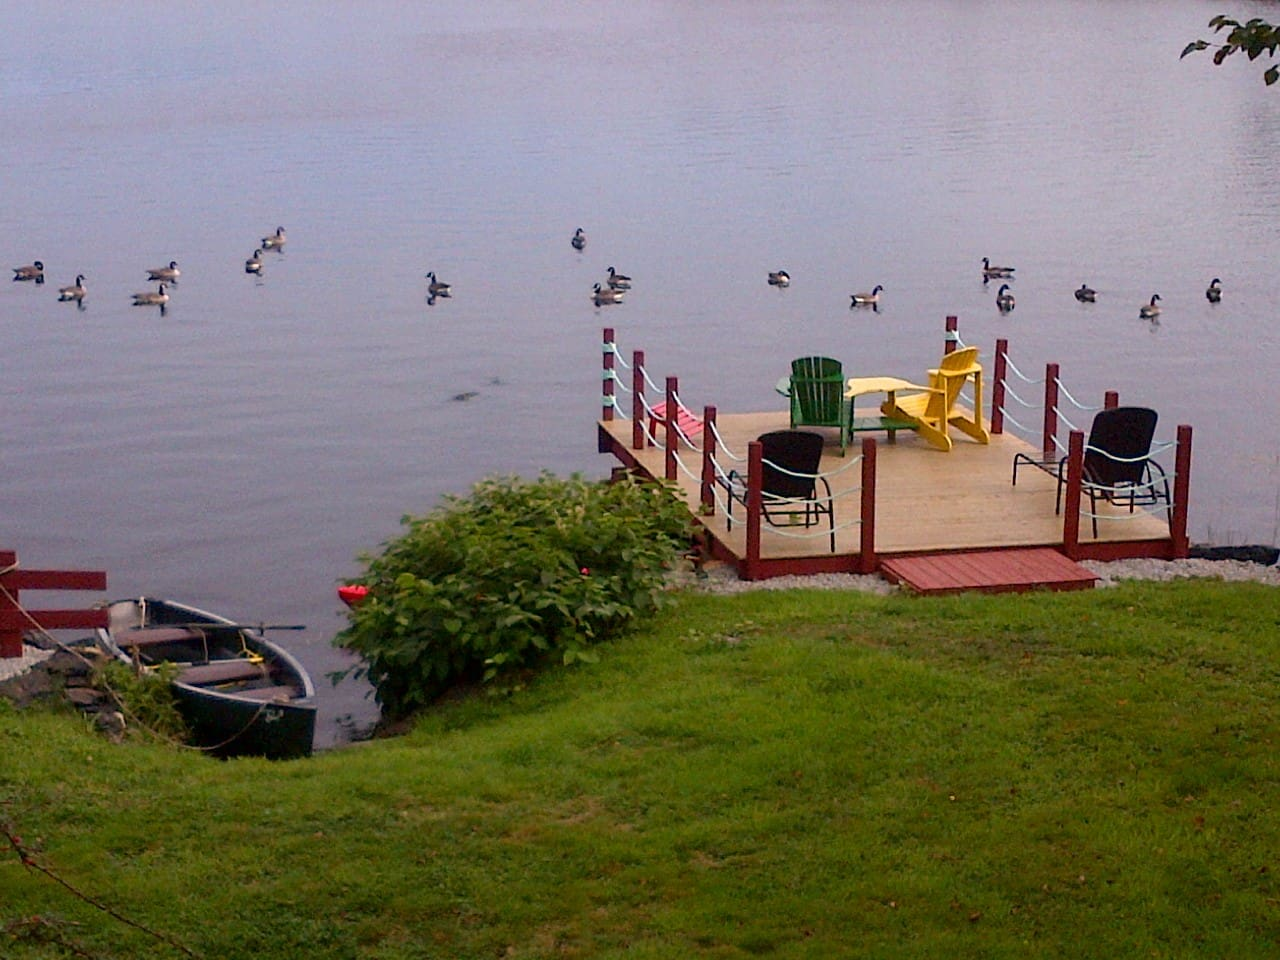 Dock for bass fishing, relaxing.  Two kayaks, one rowboat ... with geese and ducks !  Spend time enjoying a nap, a bottle of wine, or / and peace and quiet.